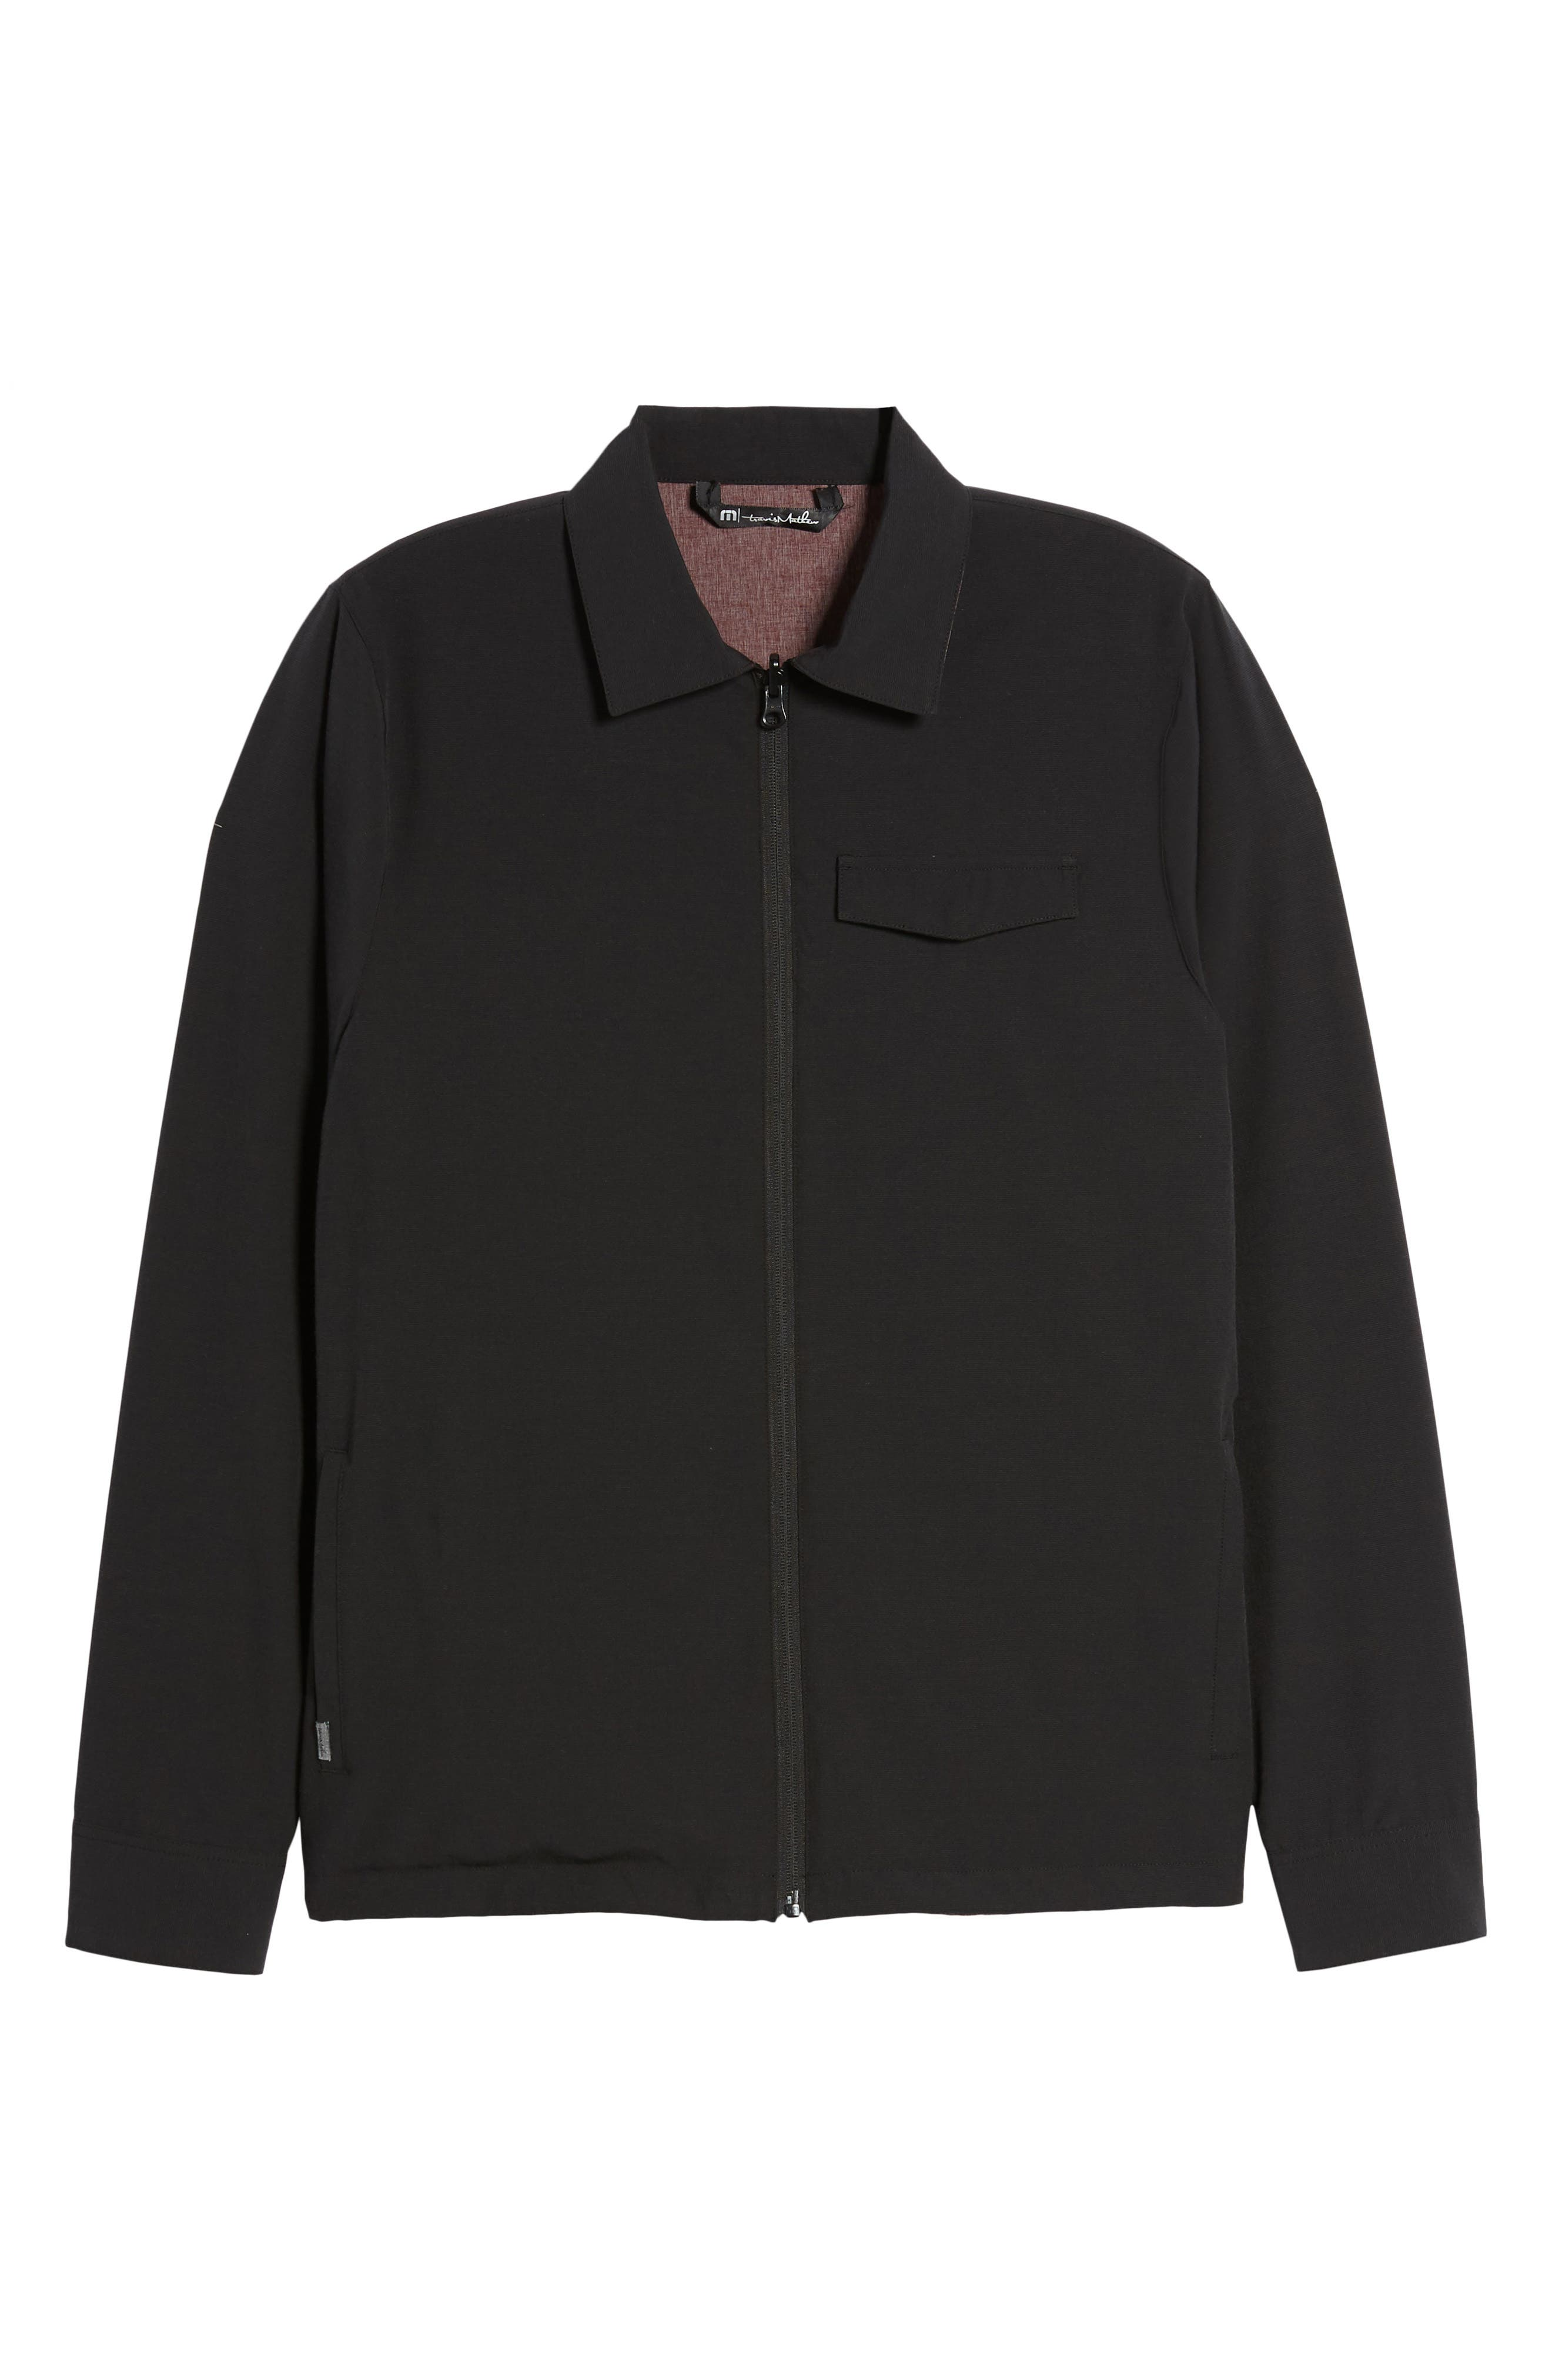 Battery Reversible Jacket,                             Alternate thumbnail 7, color,                             BLACK/ WINETASTING